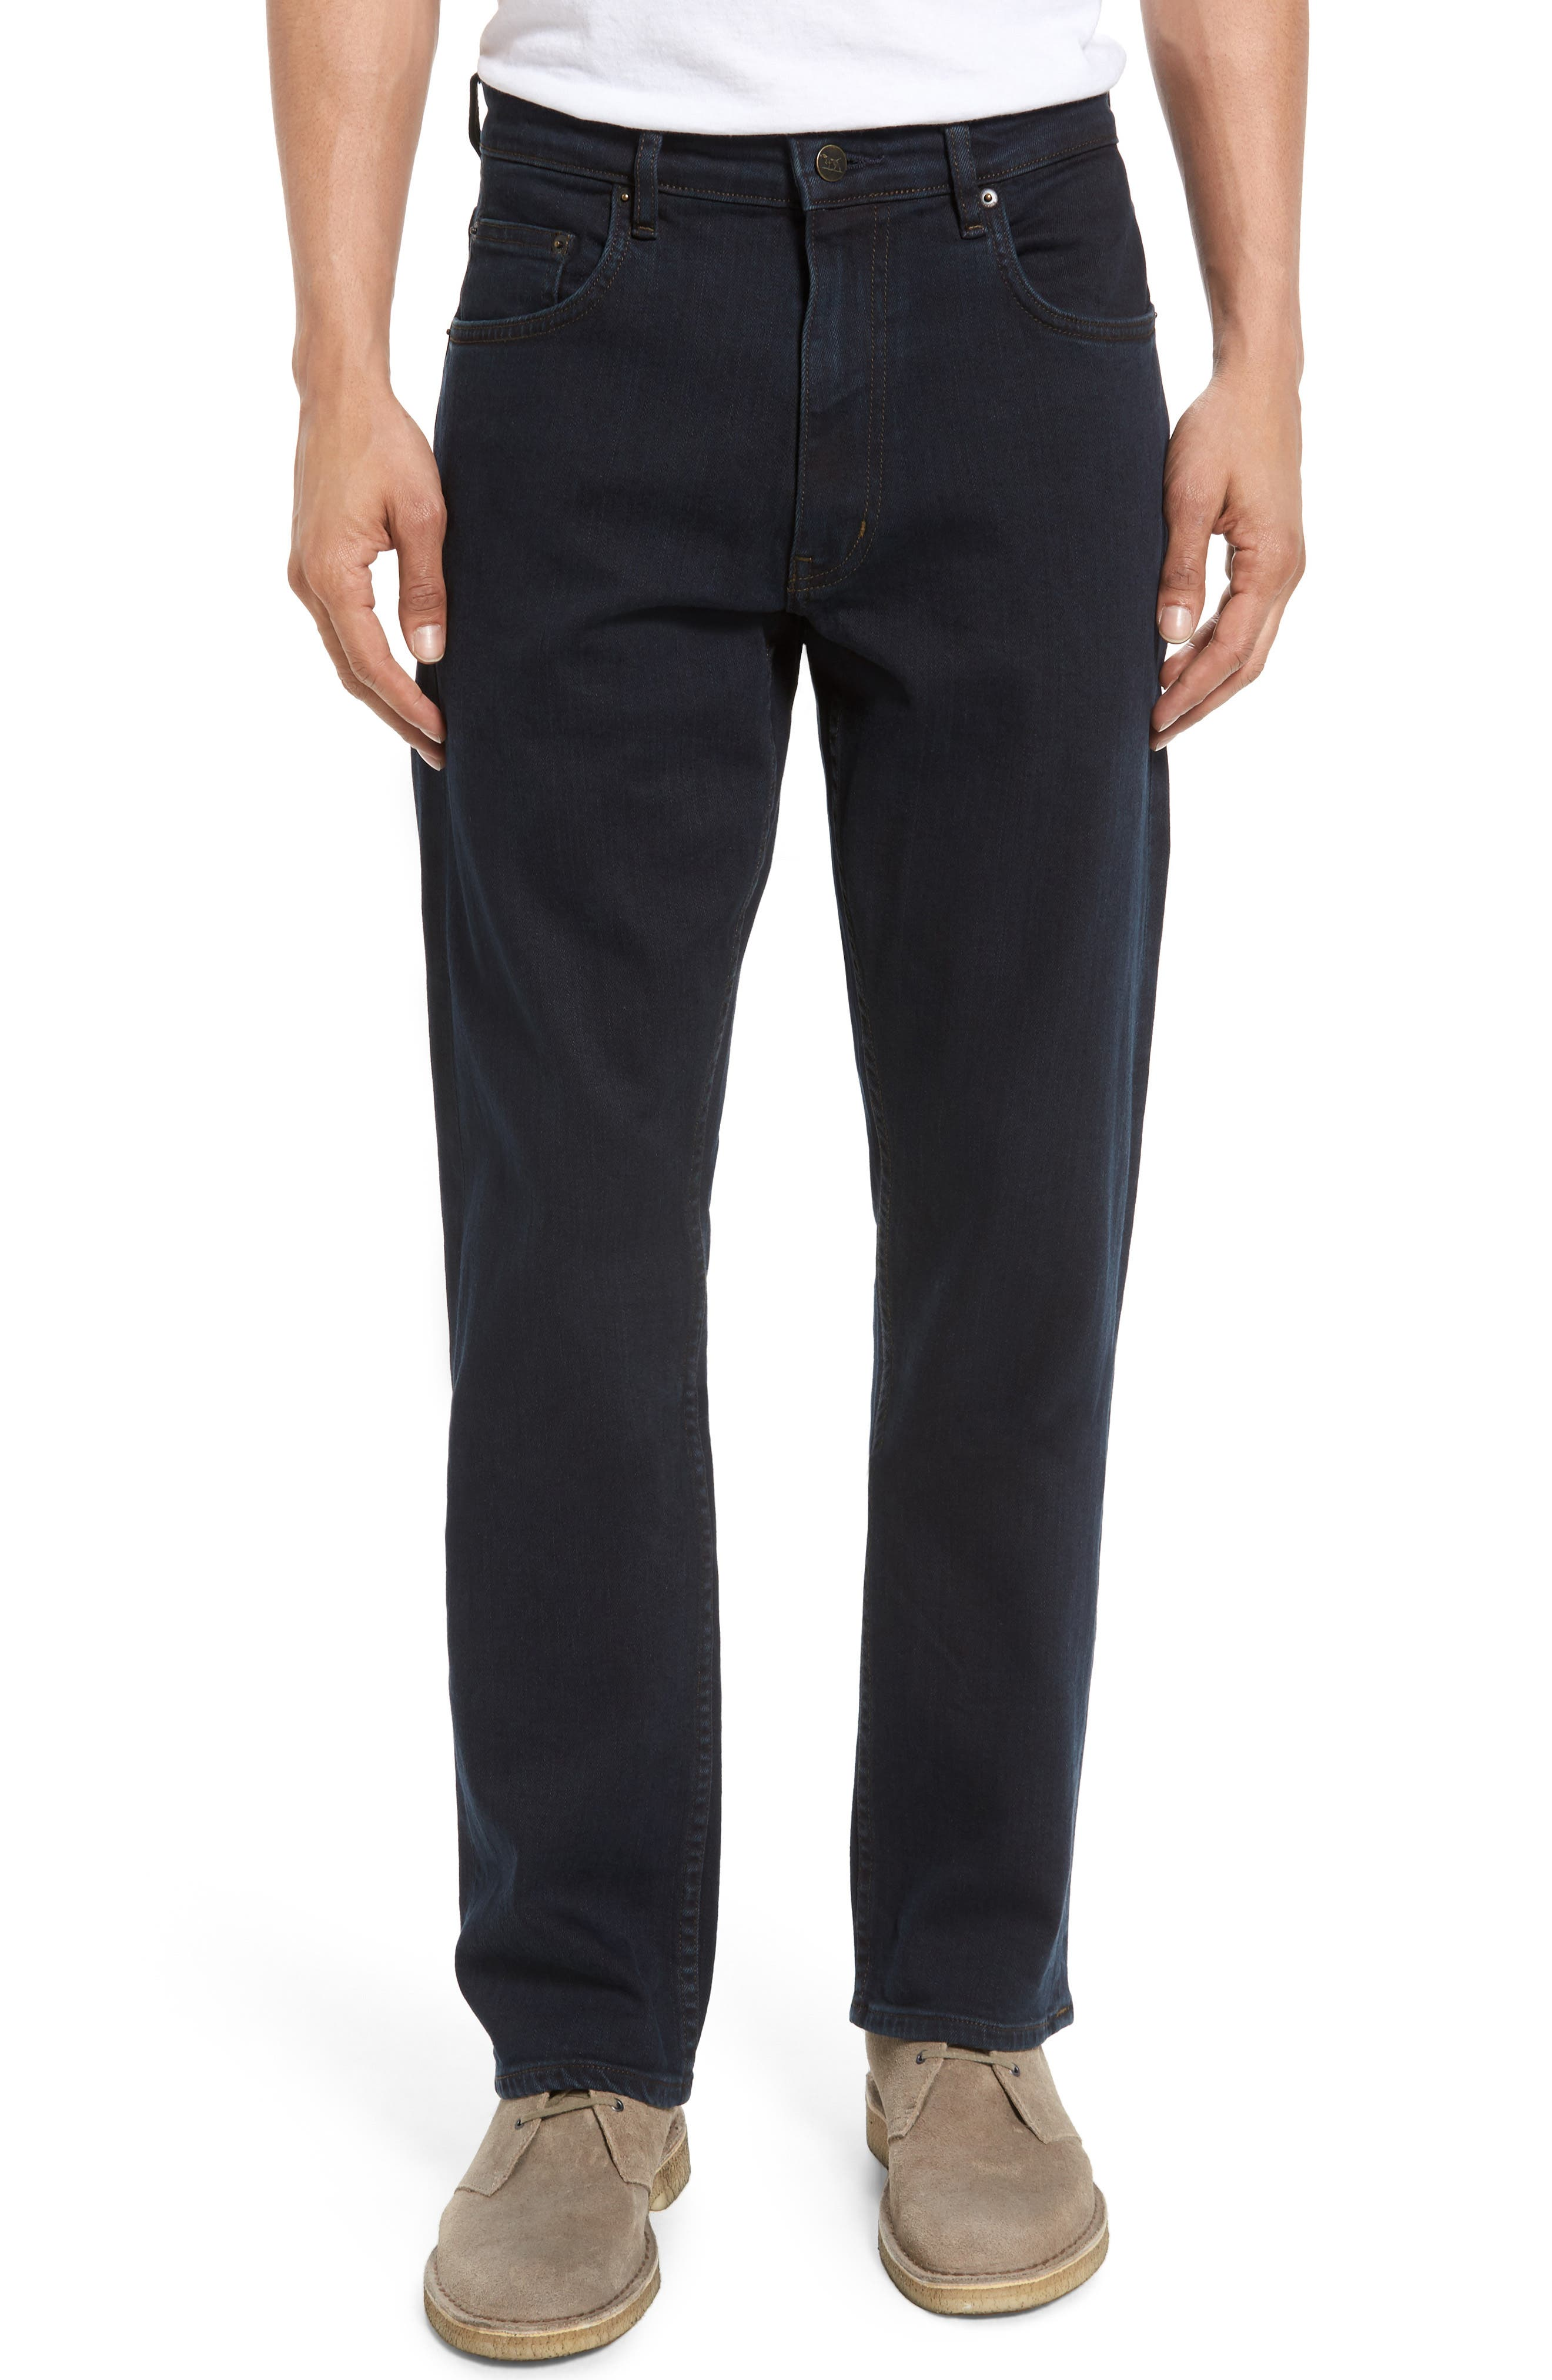 Cobham Relaxed Fit Jeans,                             Main thumbnail 1, color,                             BLUE BLACK